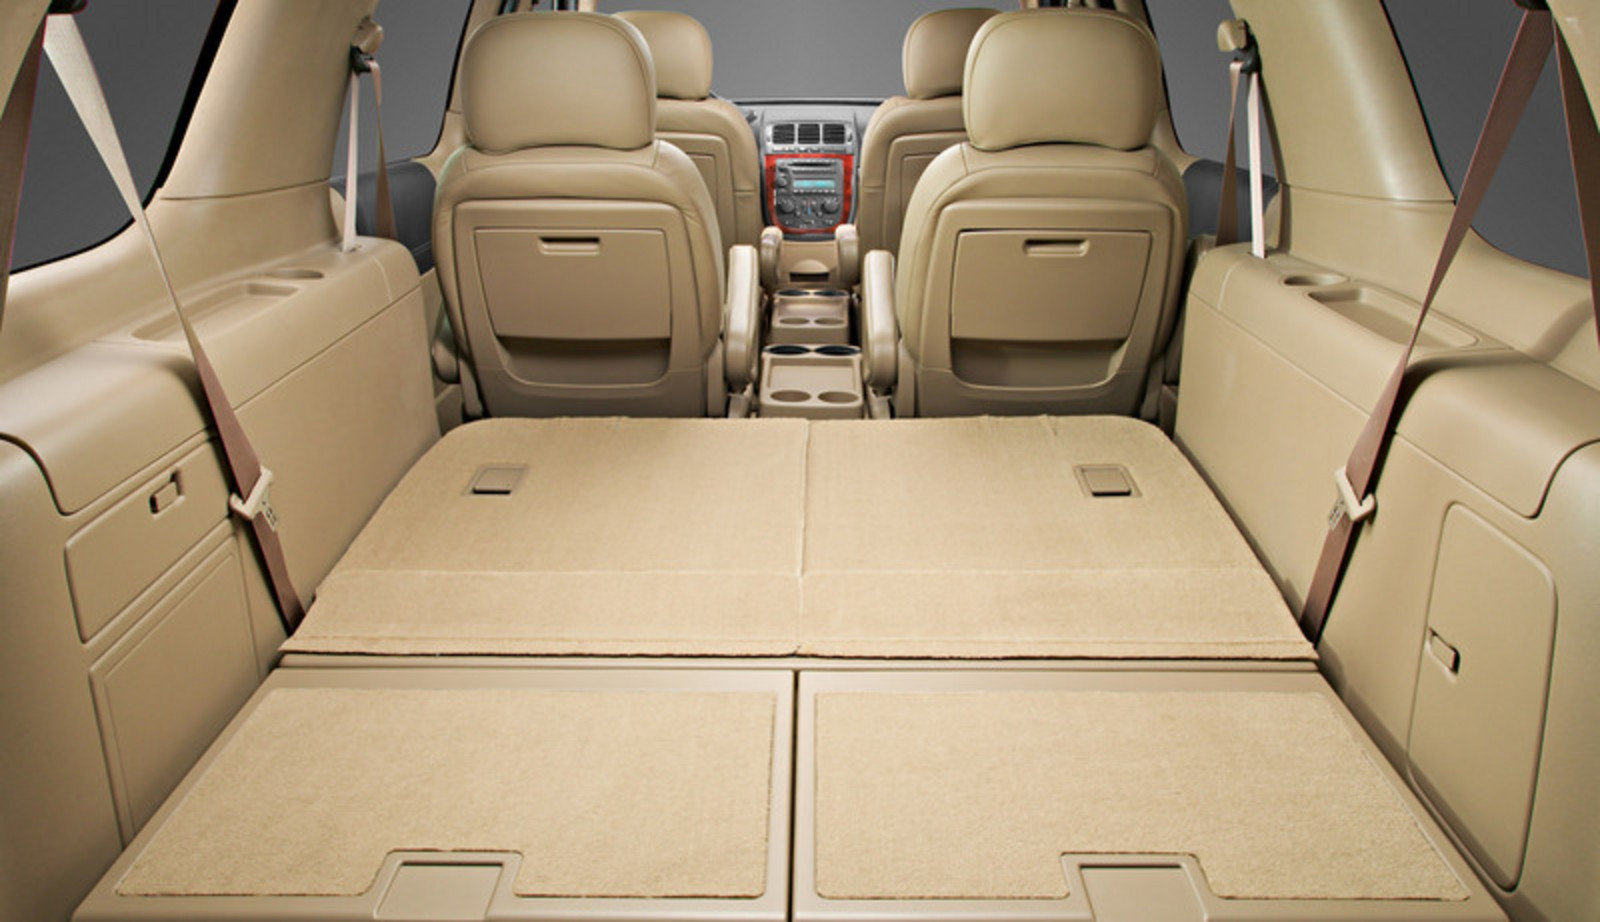 2007 Chevrolet Uplander Picture 92020 Car Review Top